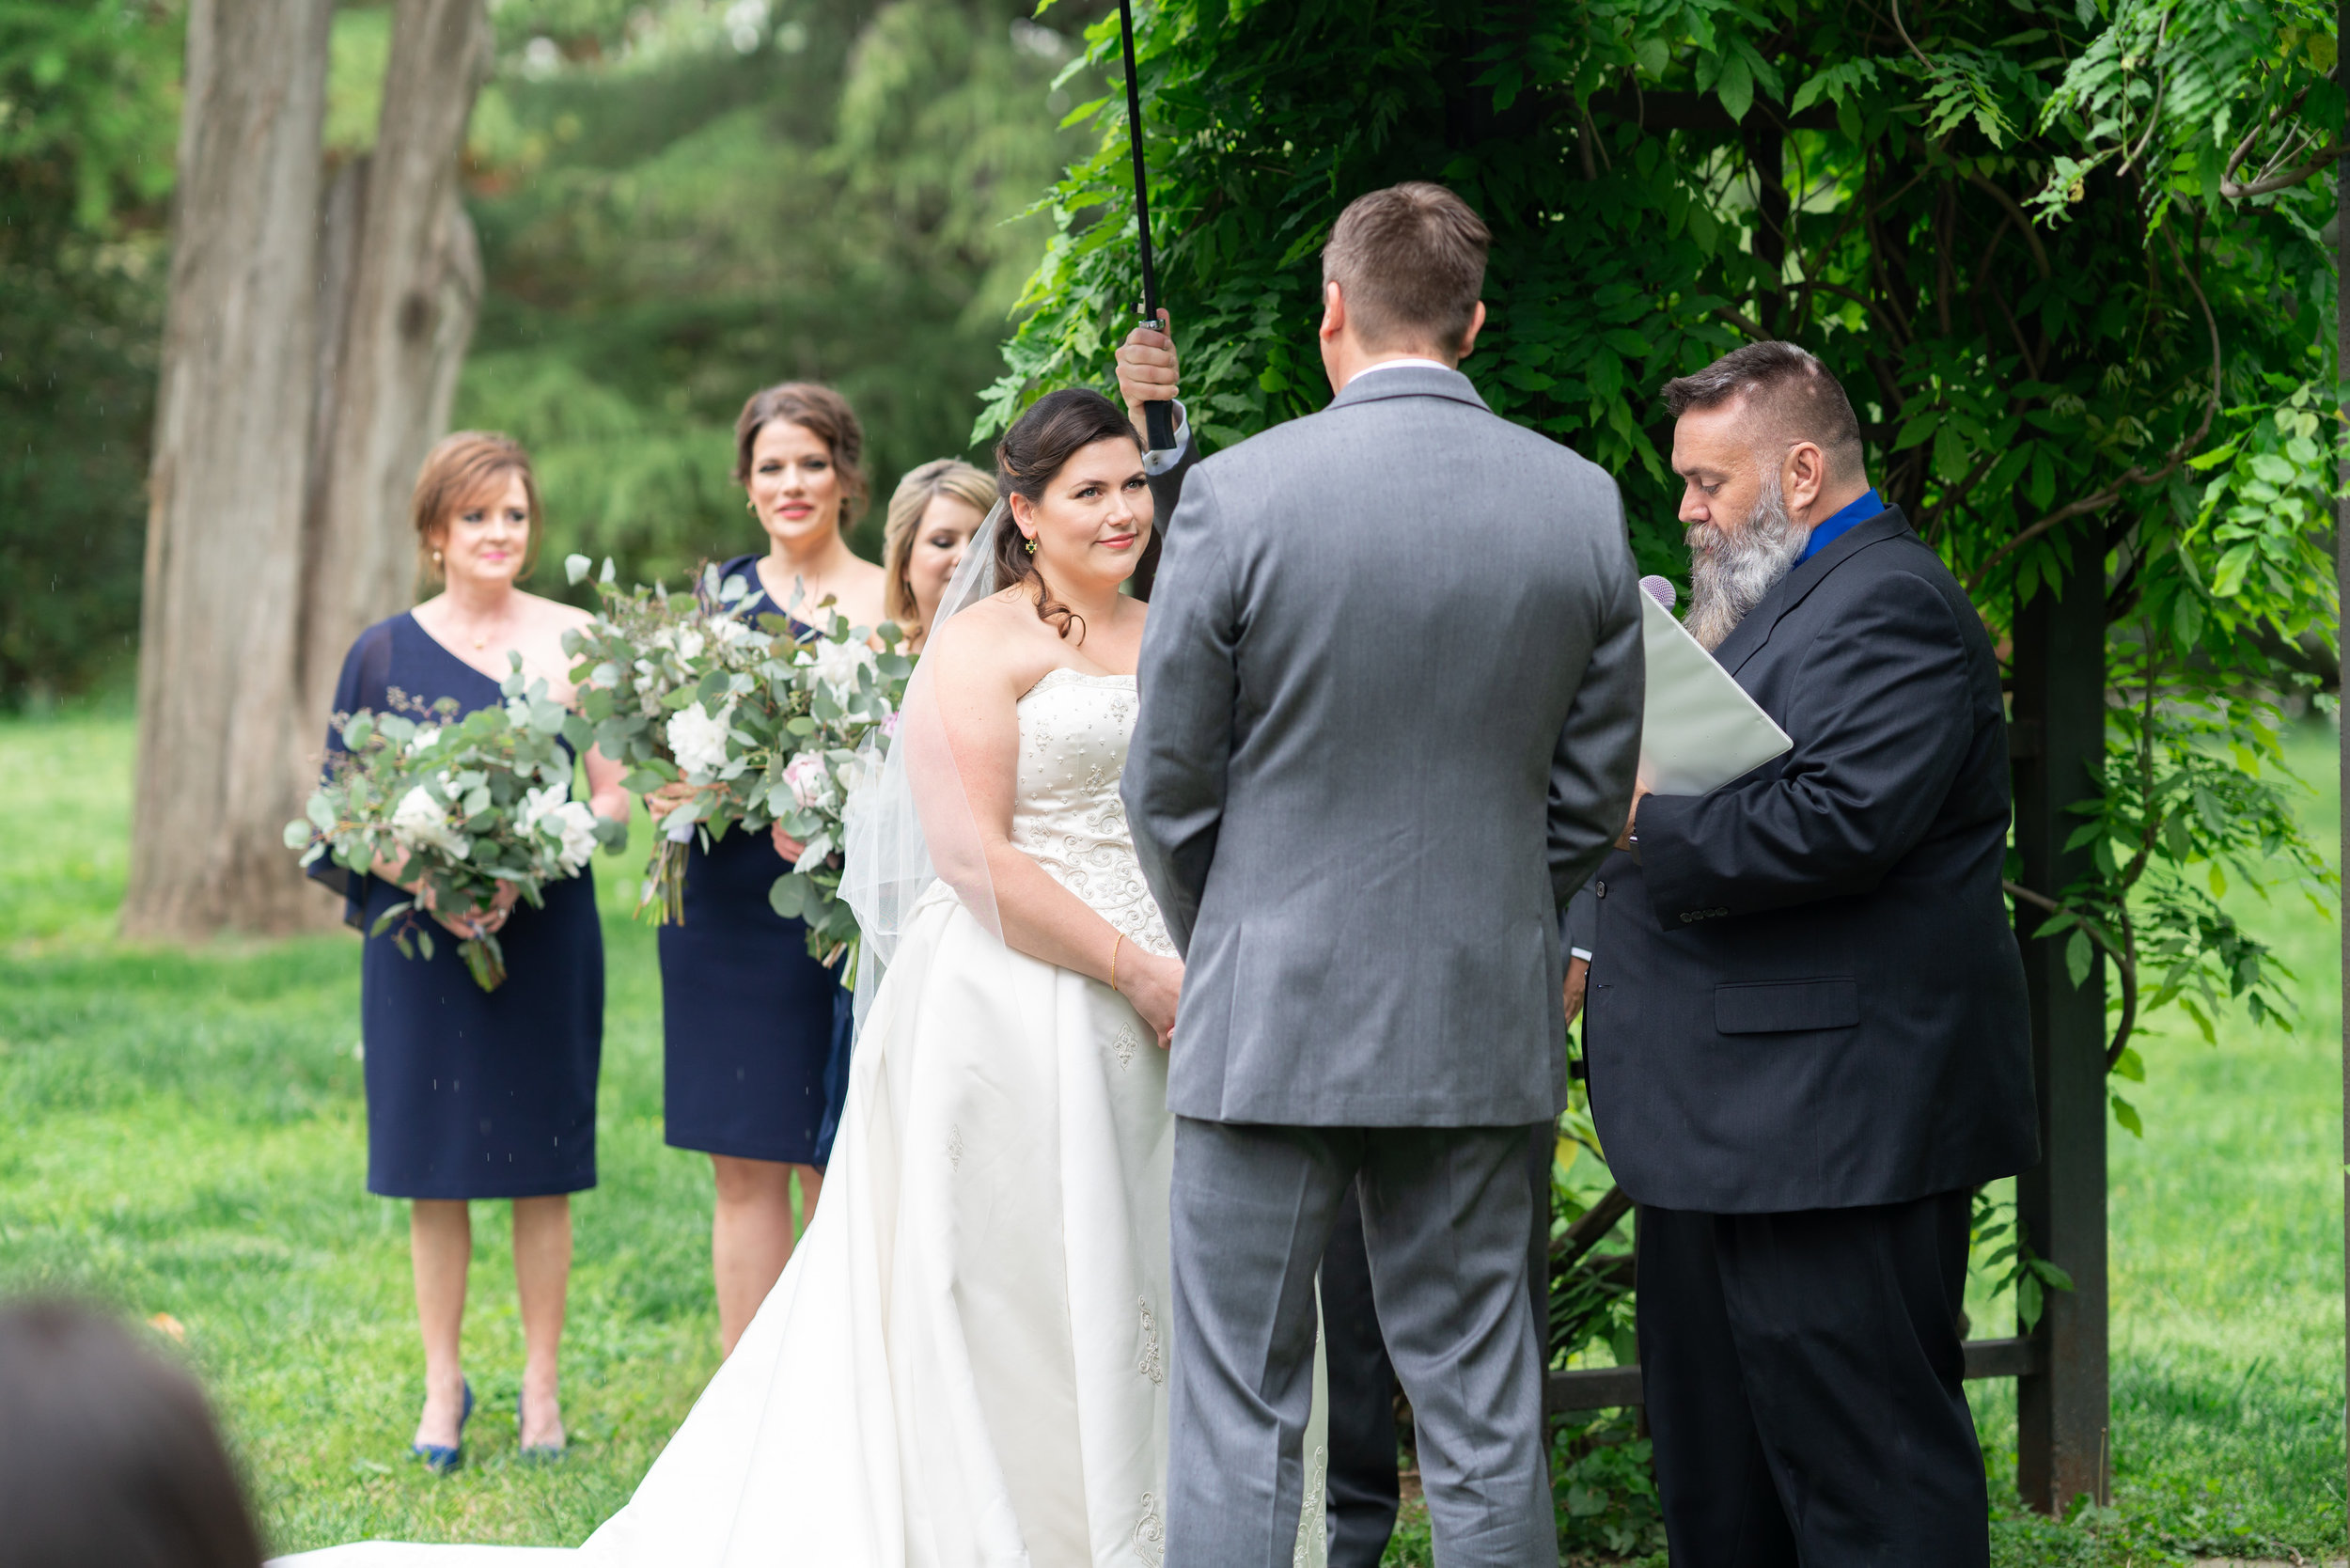 Ceremony under an ivy arch at Hendry House wedding